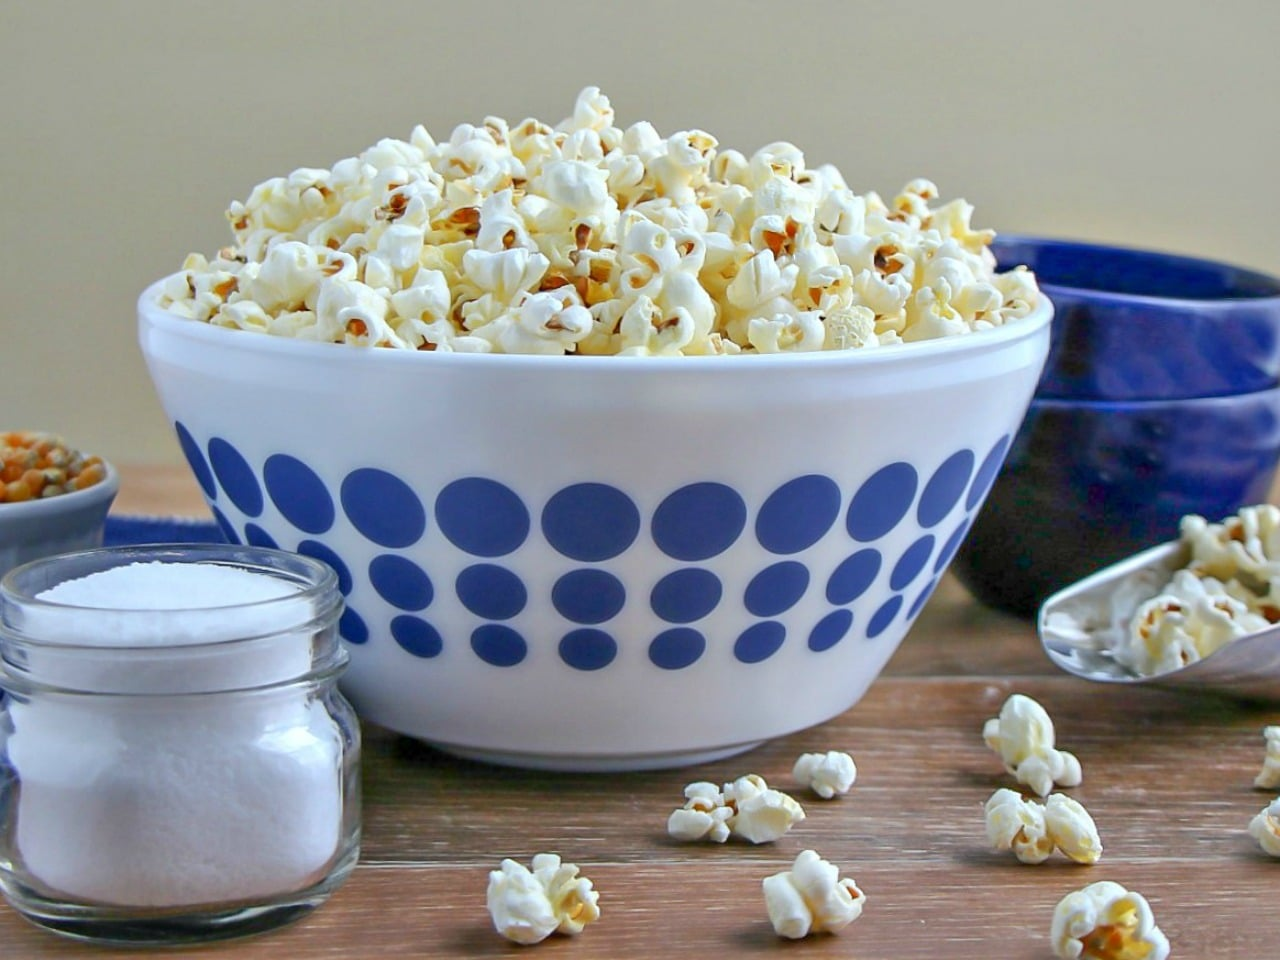 Stovetop Popcorn piled high in a white bowl with blue polka dots.